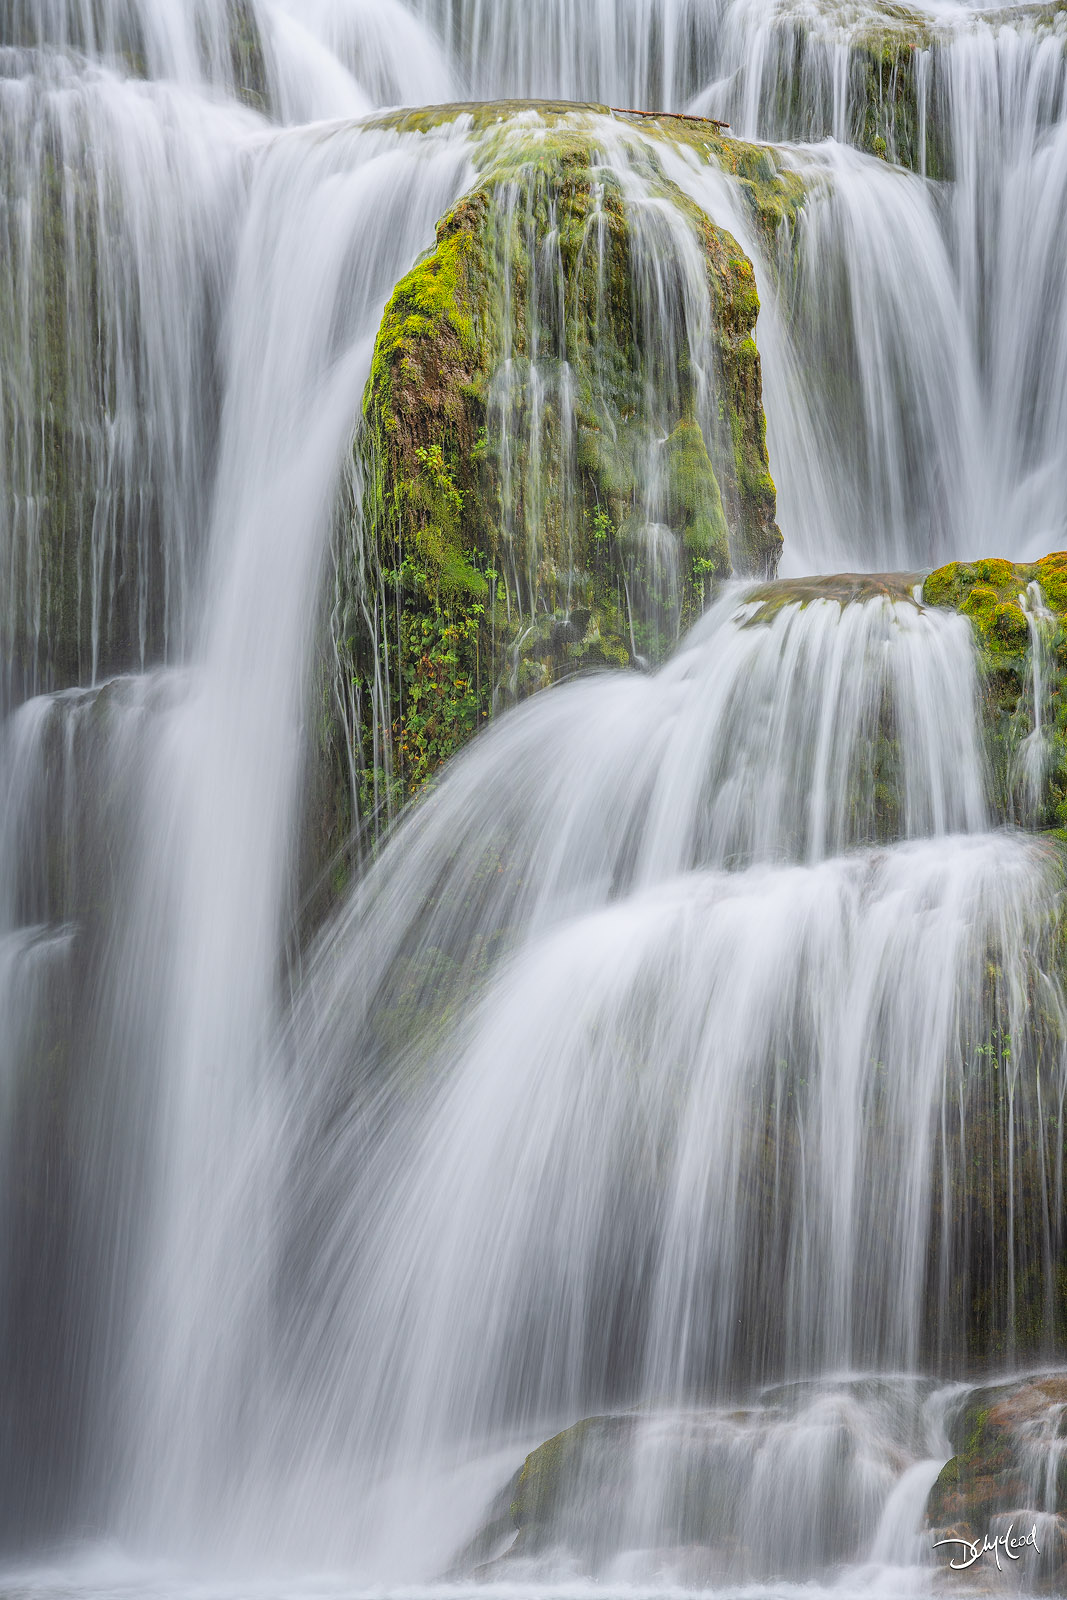 whitewater, lower lewis, washington, waterfall, closeup, photo